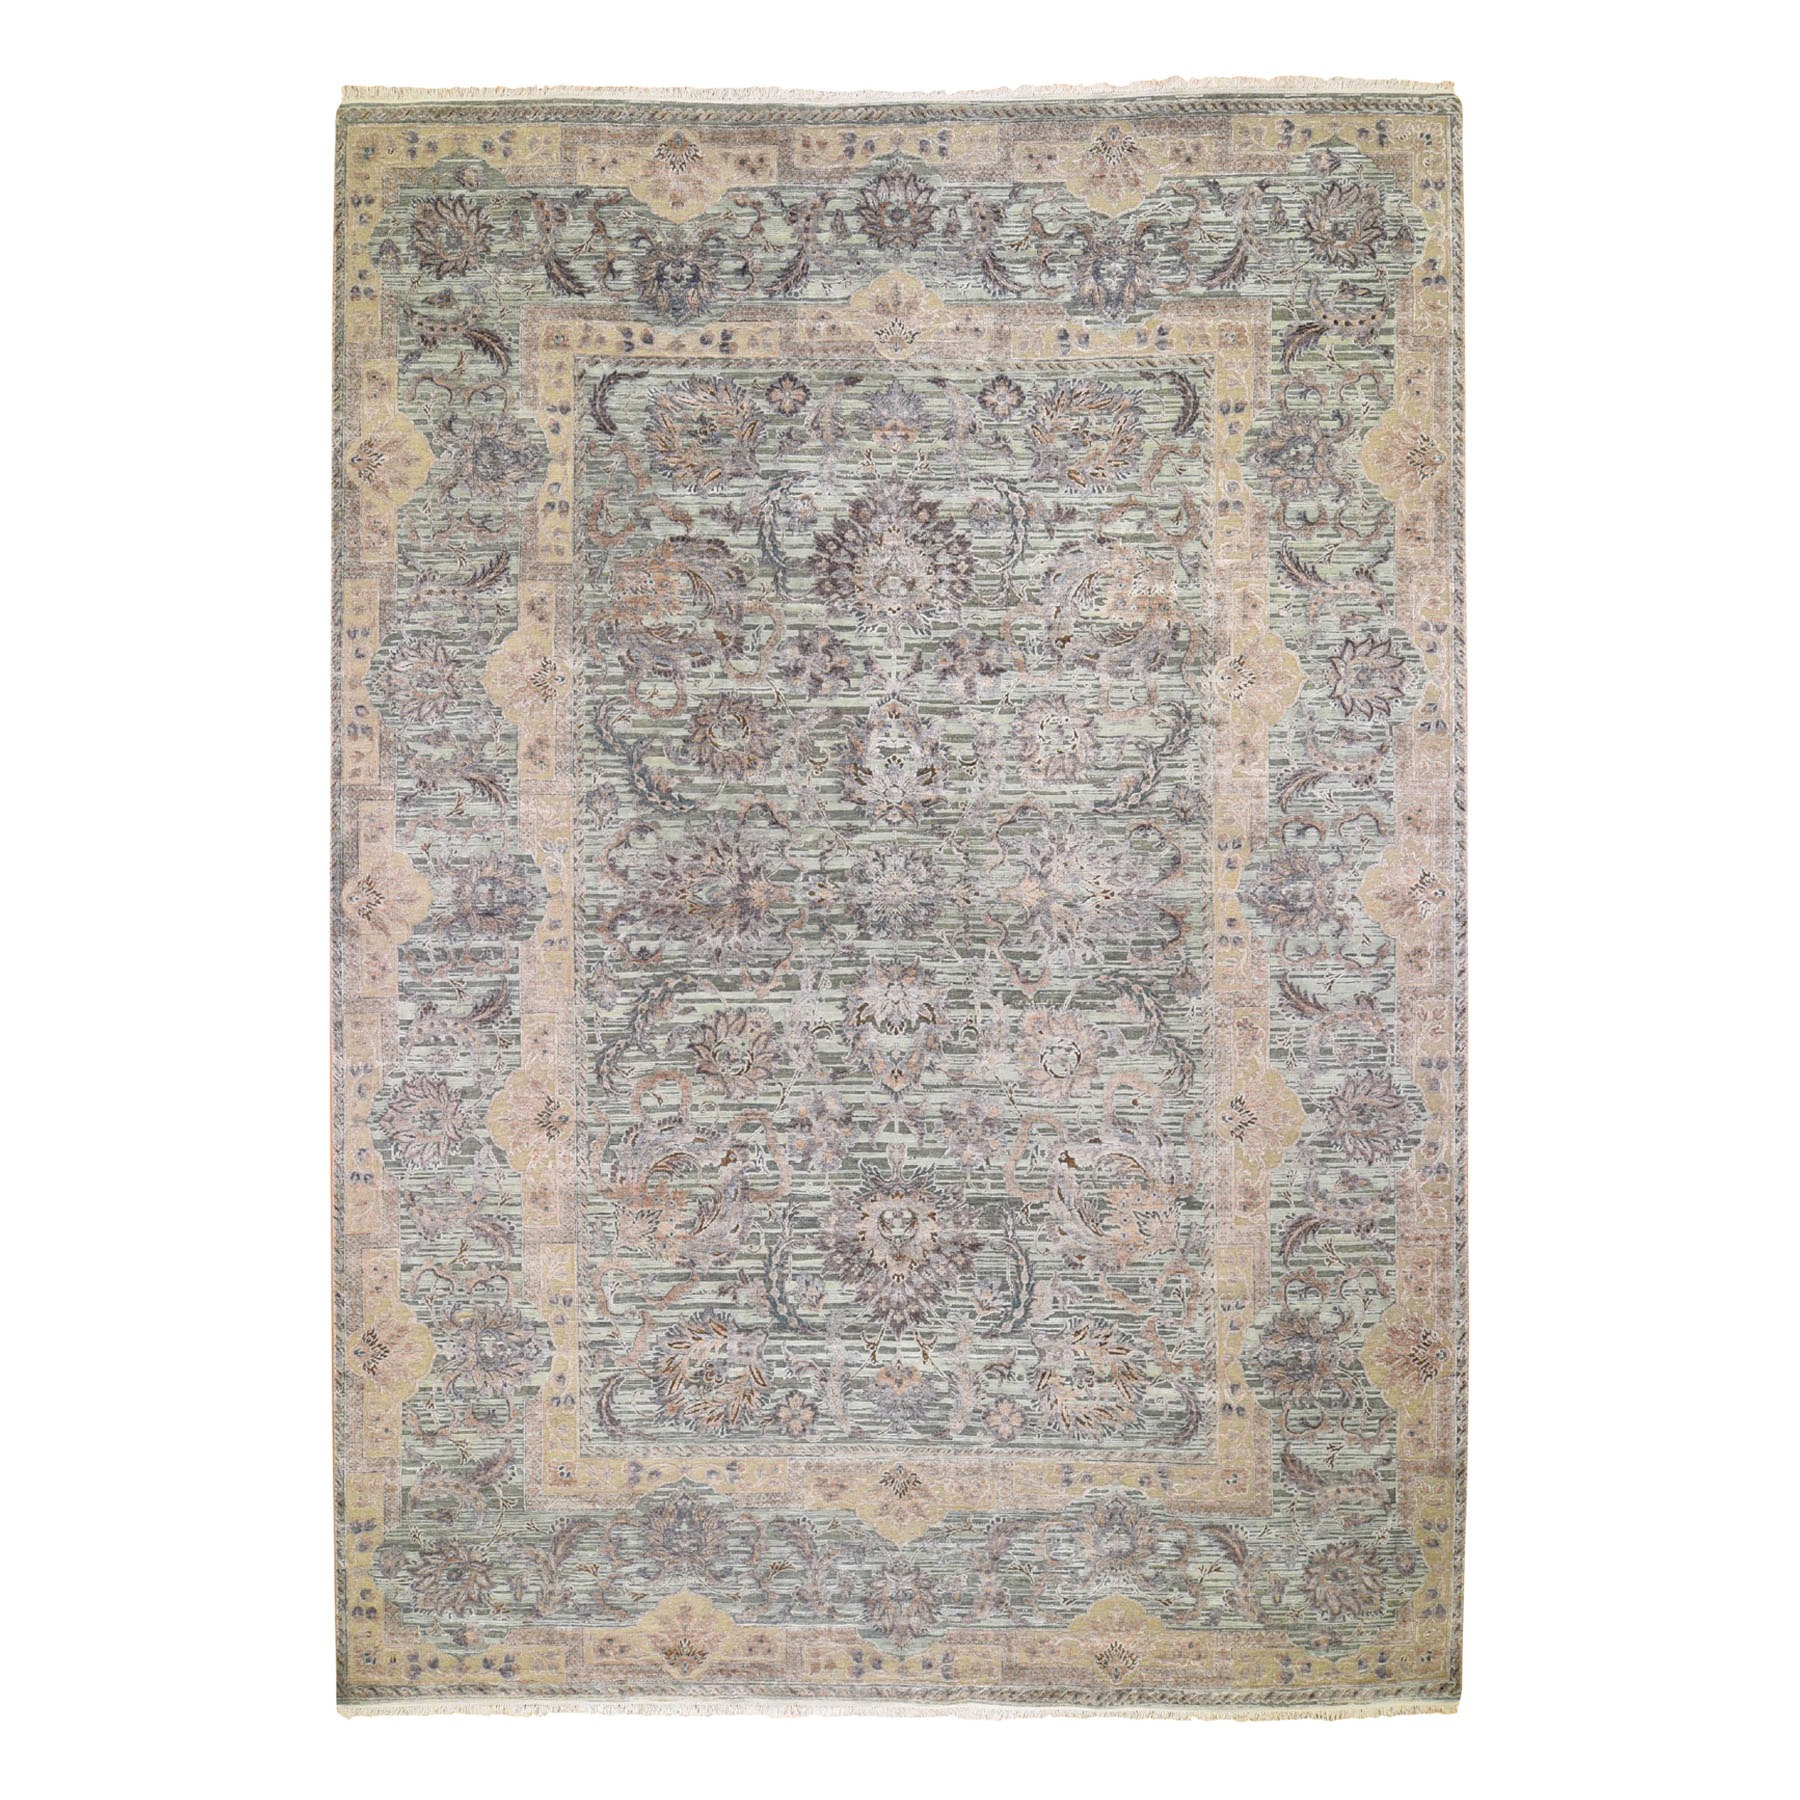 10'X14' Light Green Pure Silk With Textured Wool Mughal Design Hand Knotted Oriental Rug moad8e7c